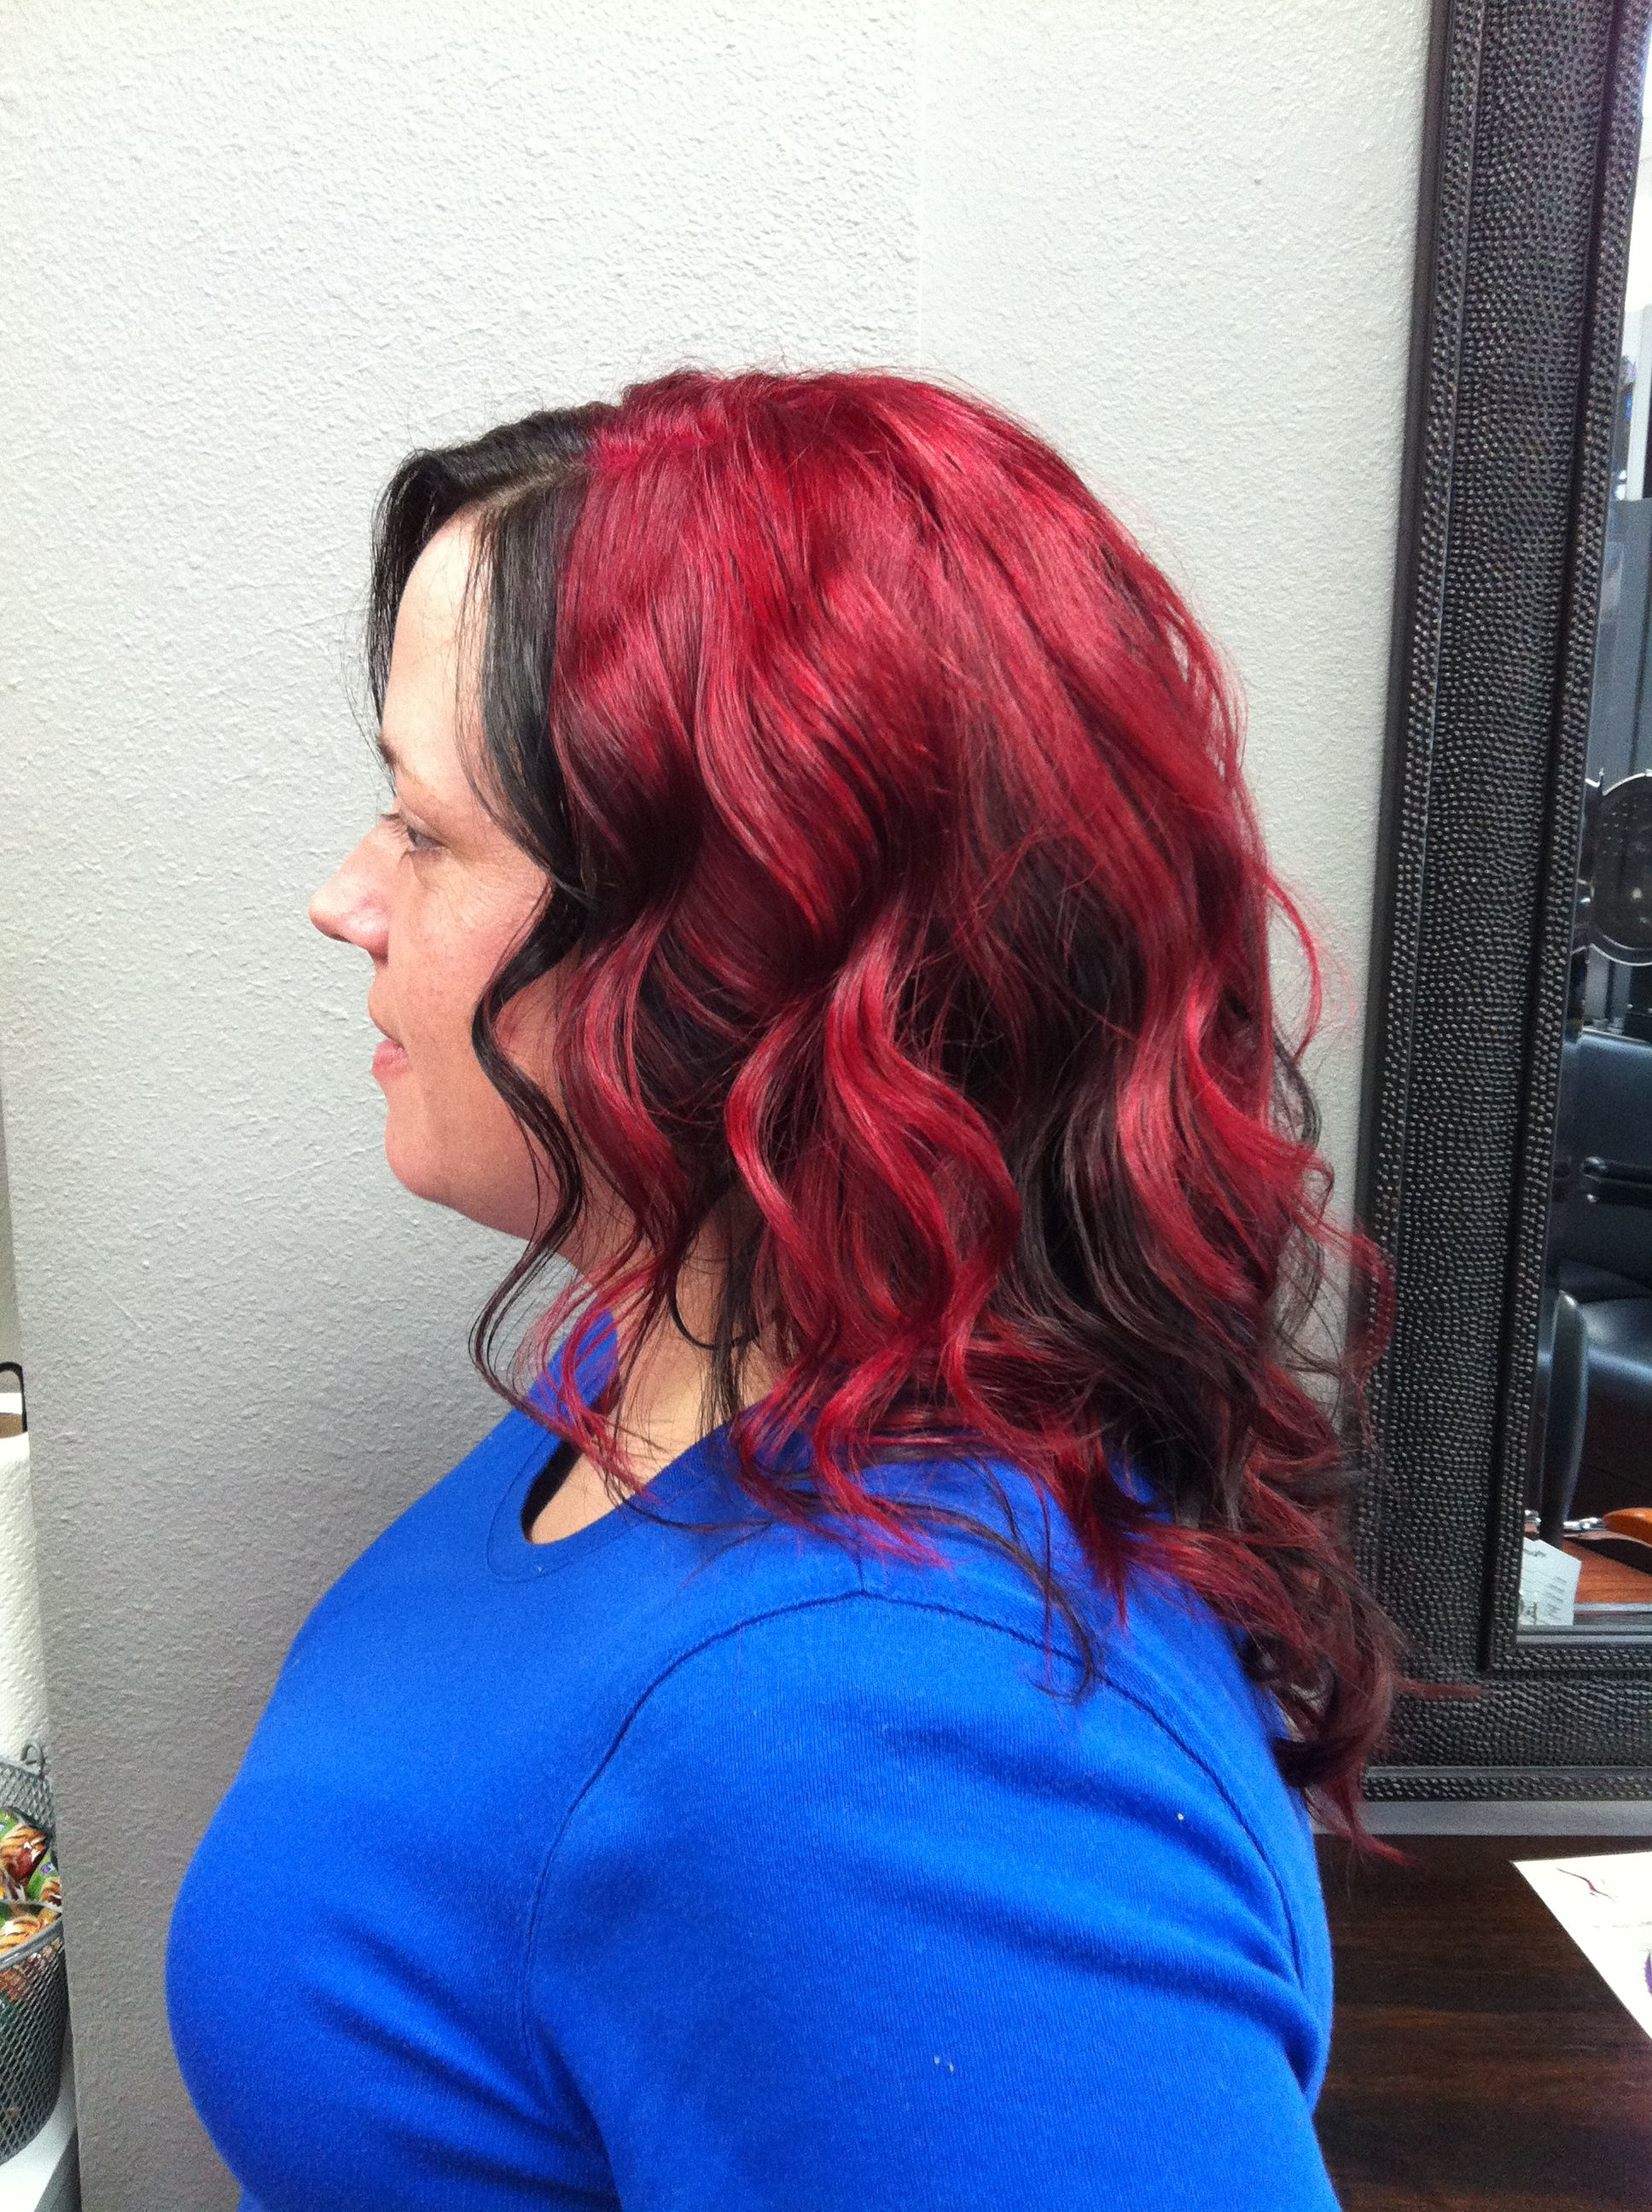 Red Hair I Like The Black Piece In The Front Would Be Cute To